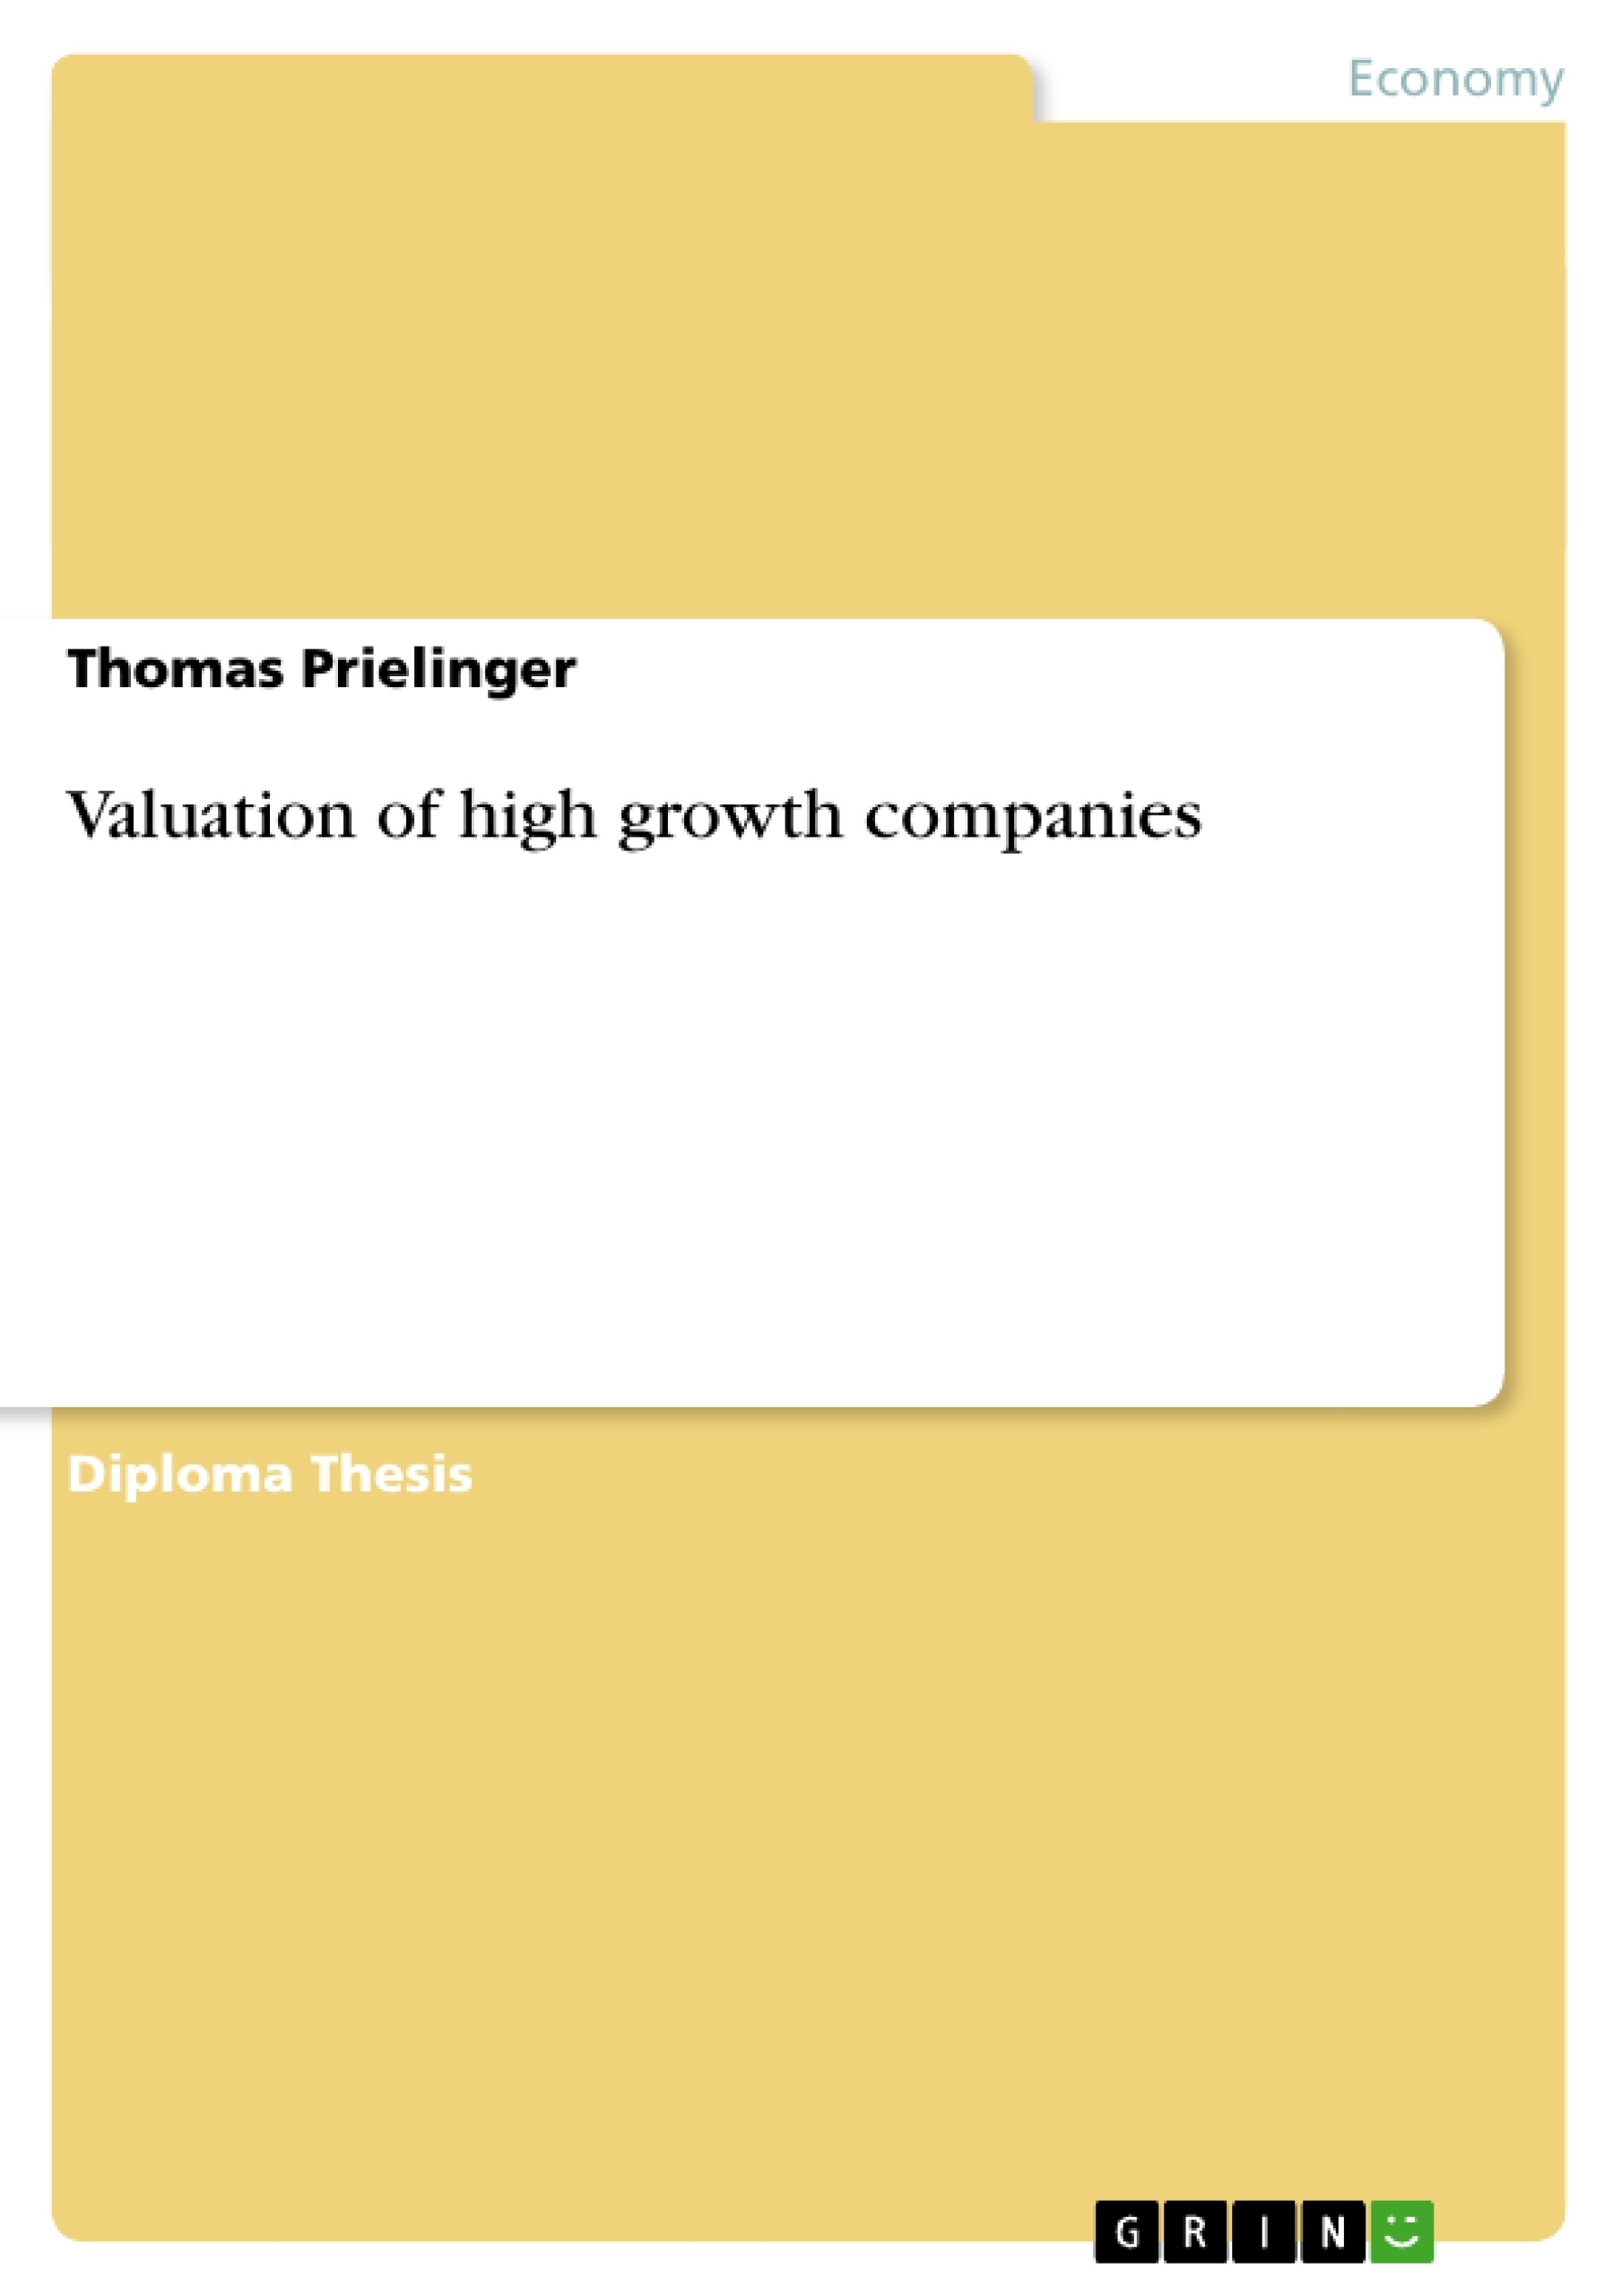 Dissertation on company valuation